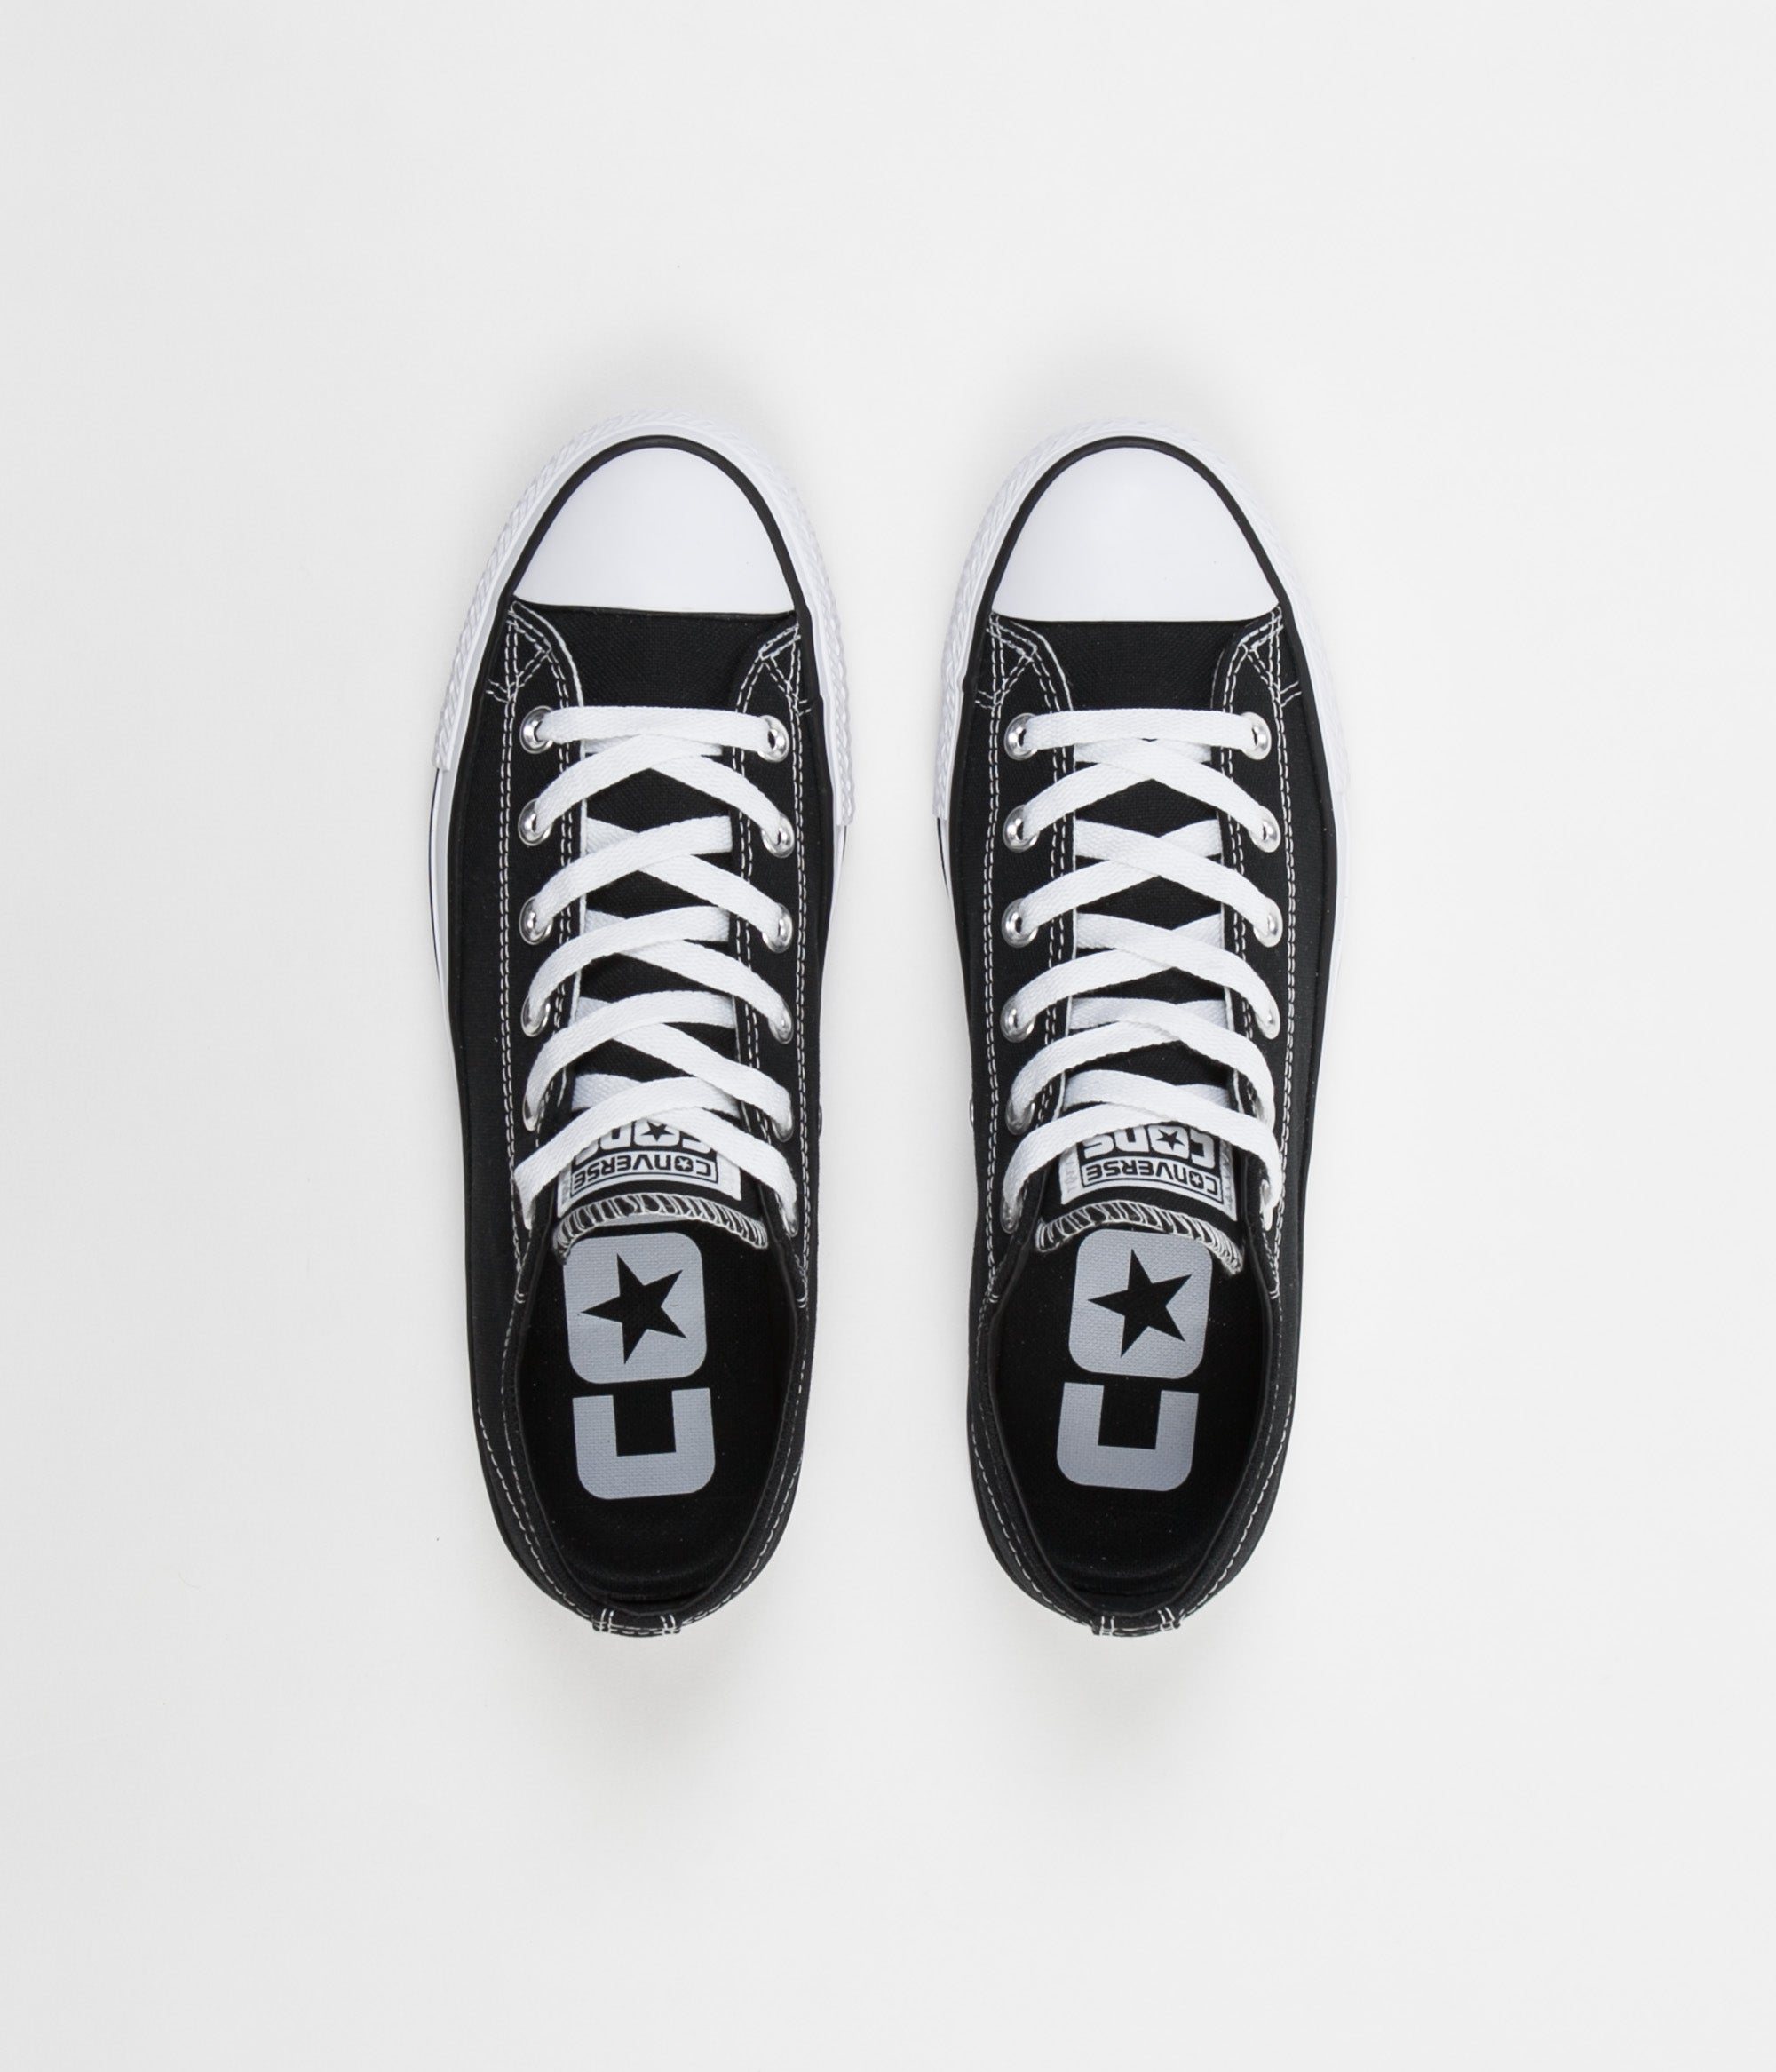 Converse CTAS Pro Ox Canvas Shoes - Black / Black / White